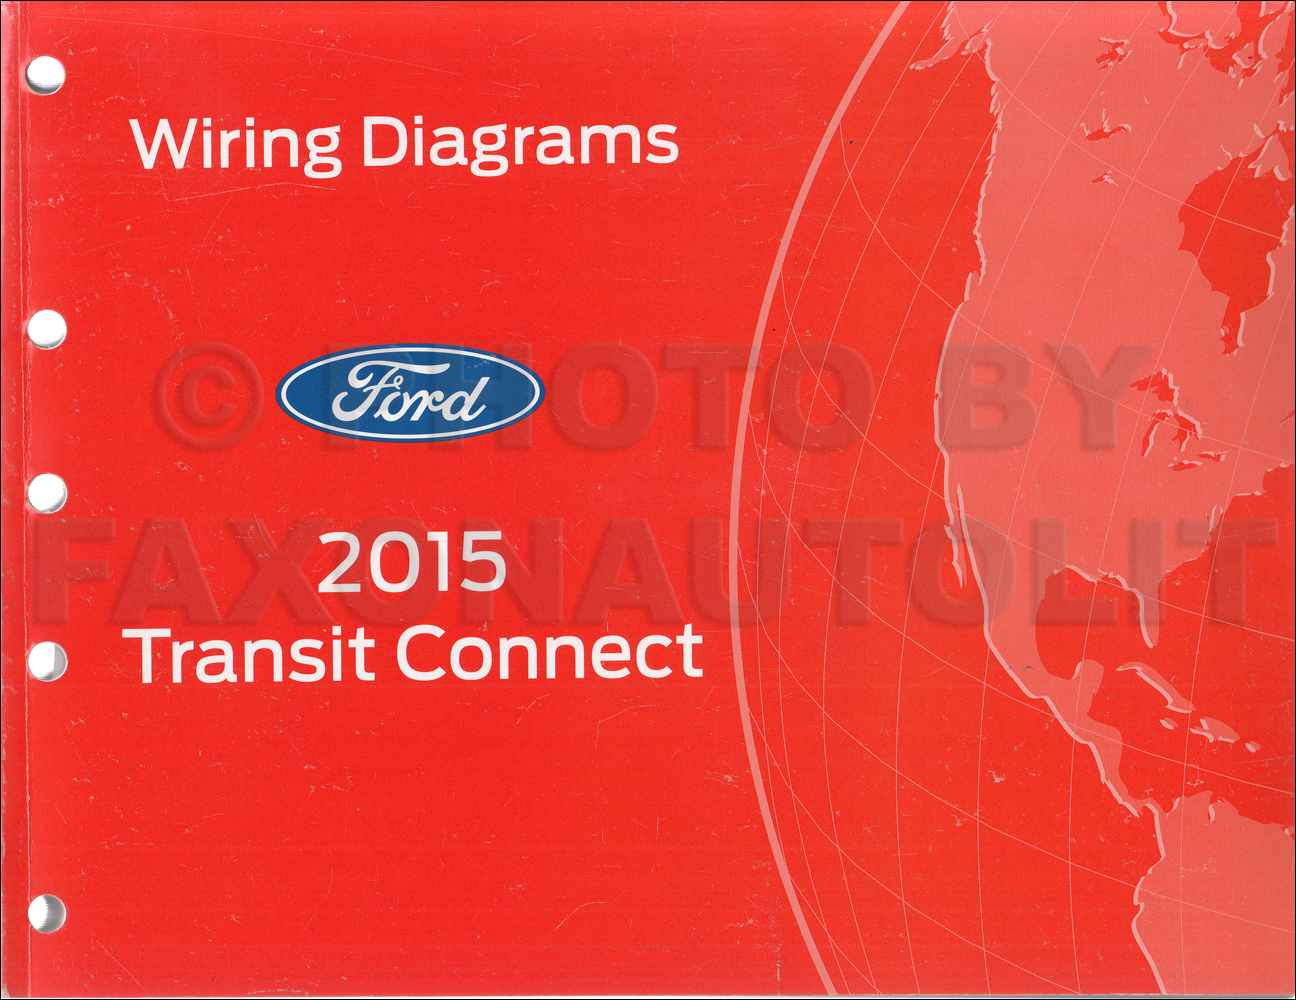 ford transit connect trailer wiring diagram yt 1412  electrics wiring diagram ford transit connect trailer  electrics wiring diagram ford transit